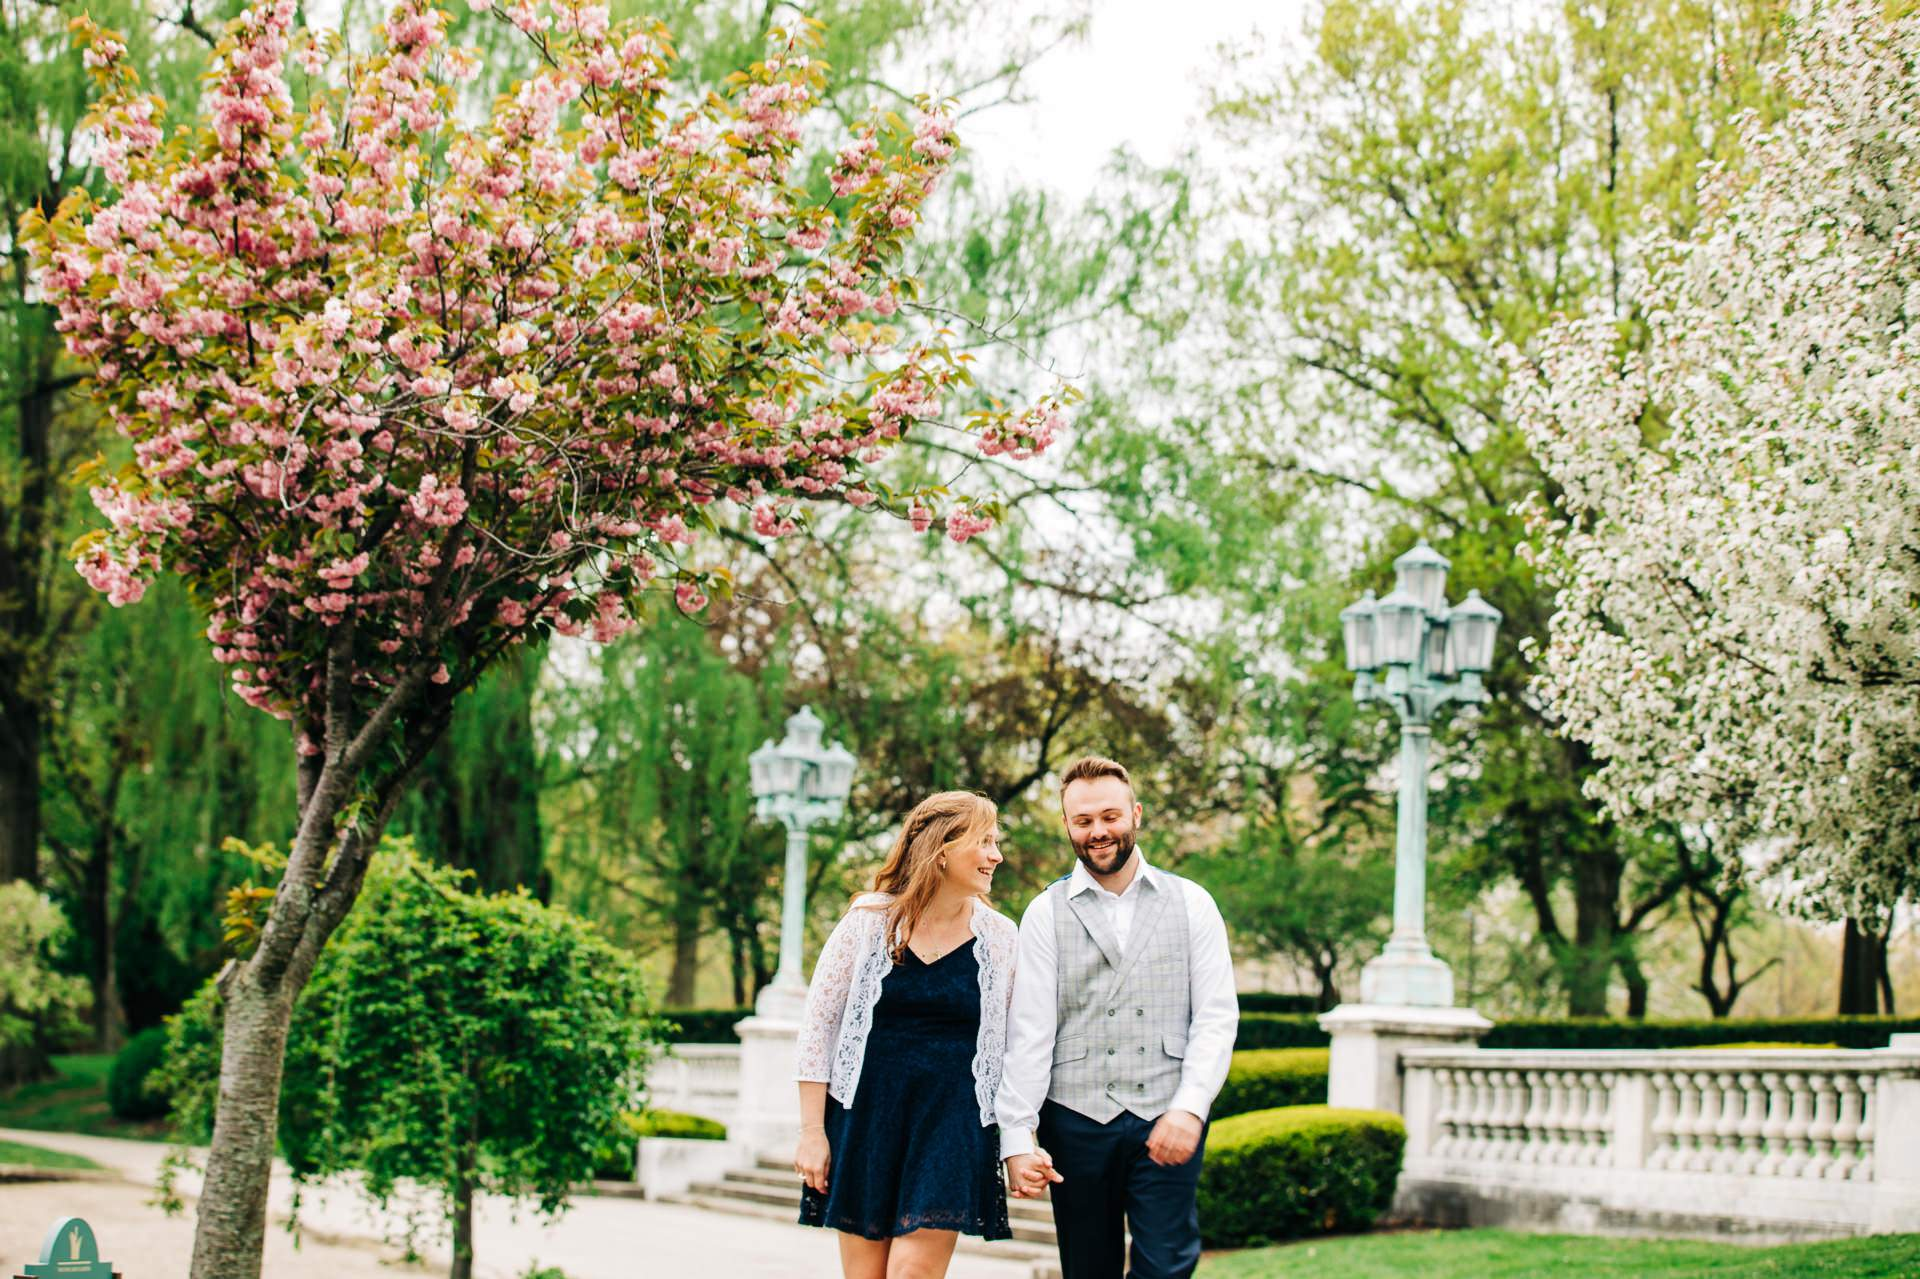 Cleveland Spring Cherry Blossom Engagement Session 8.jpg